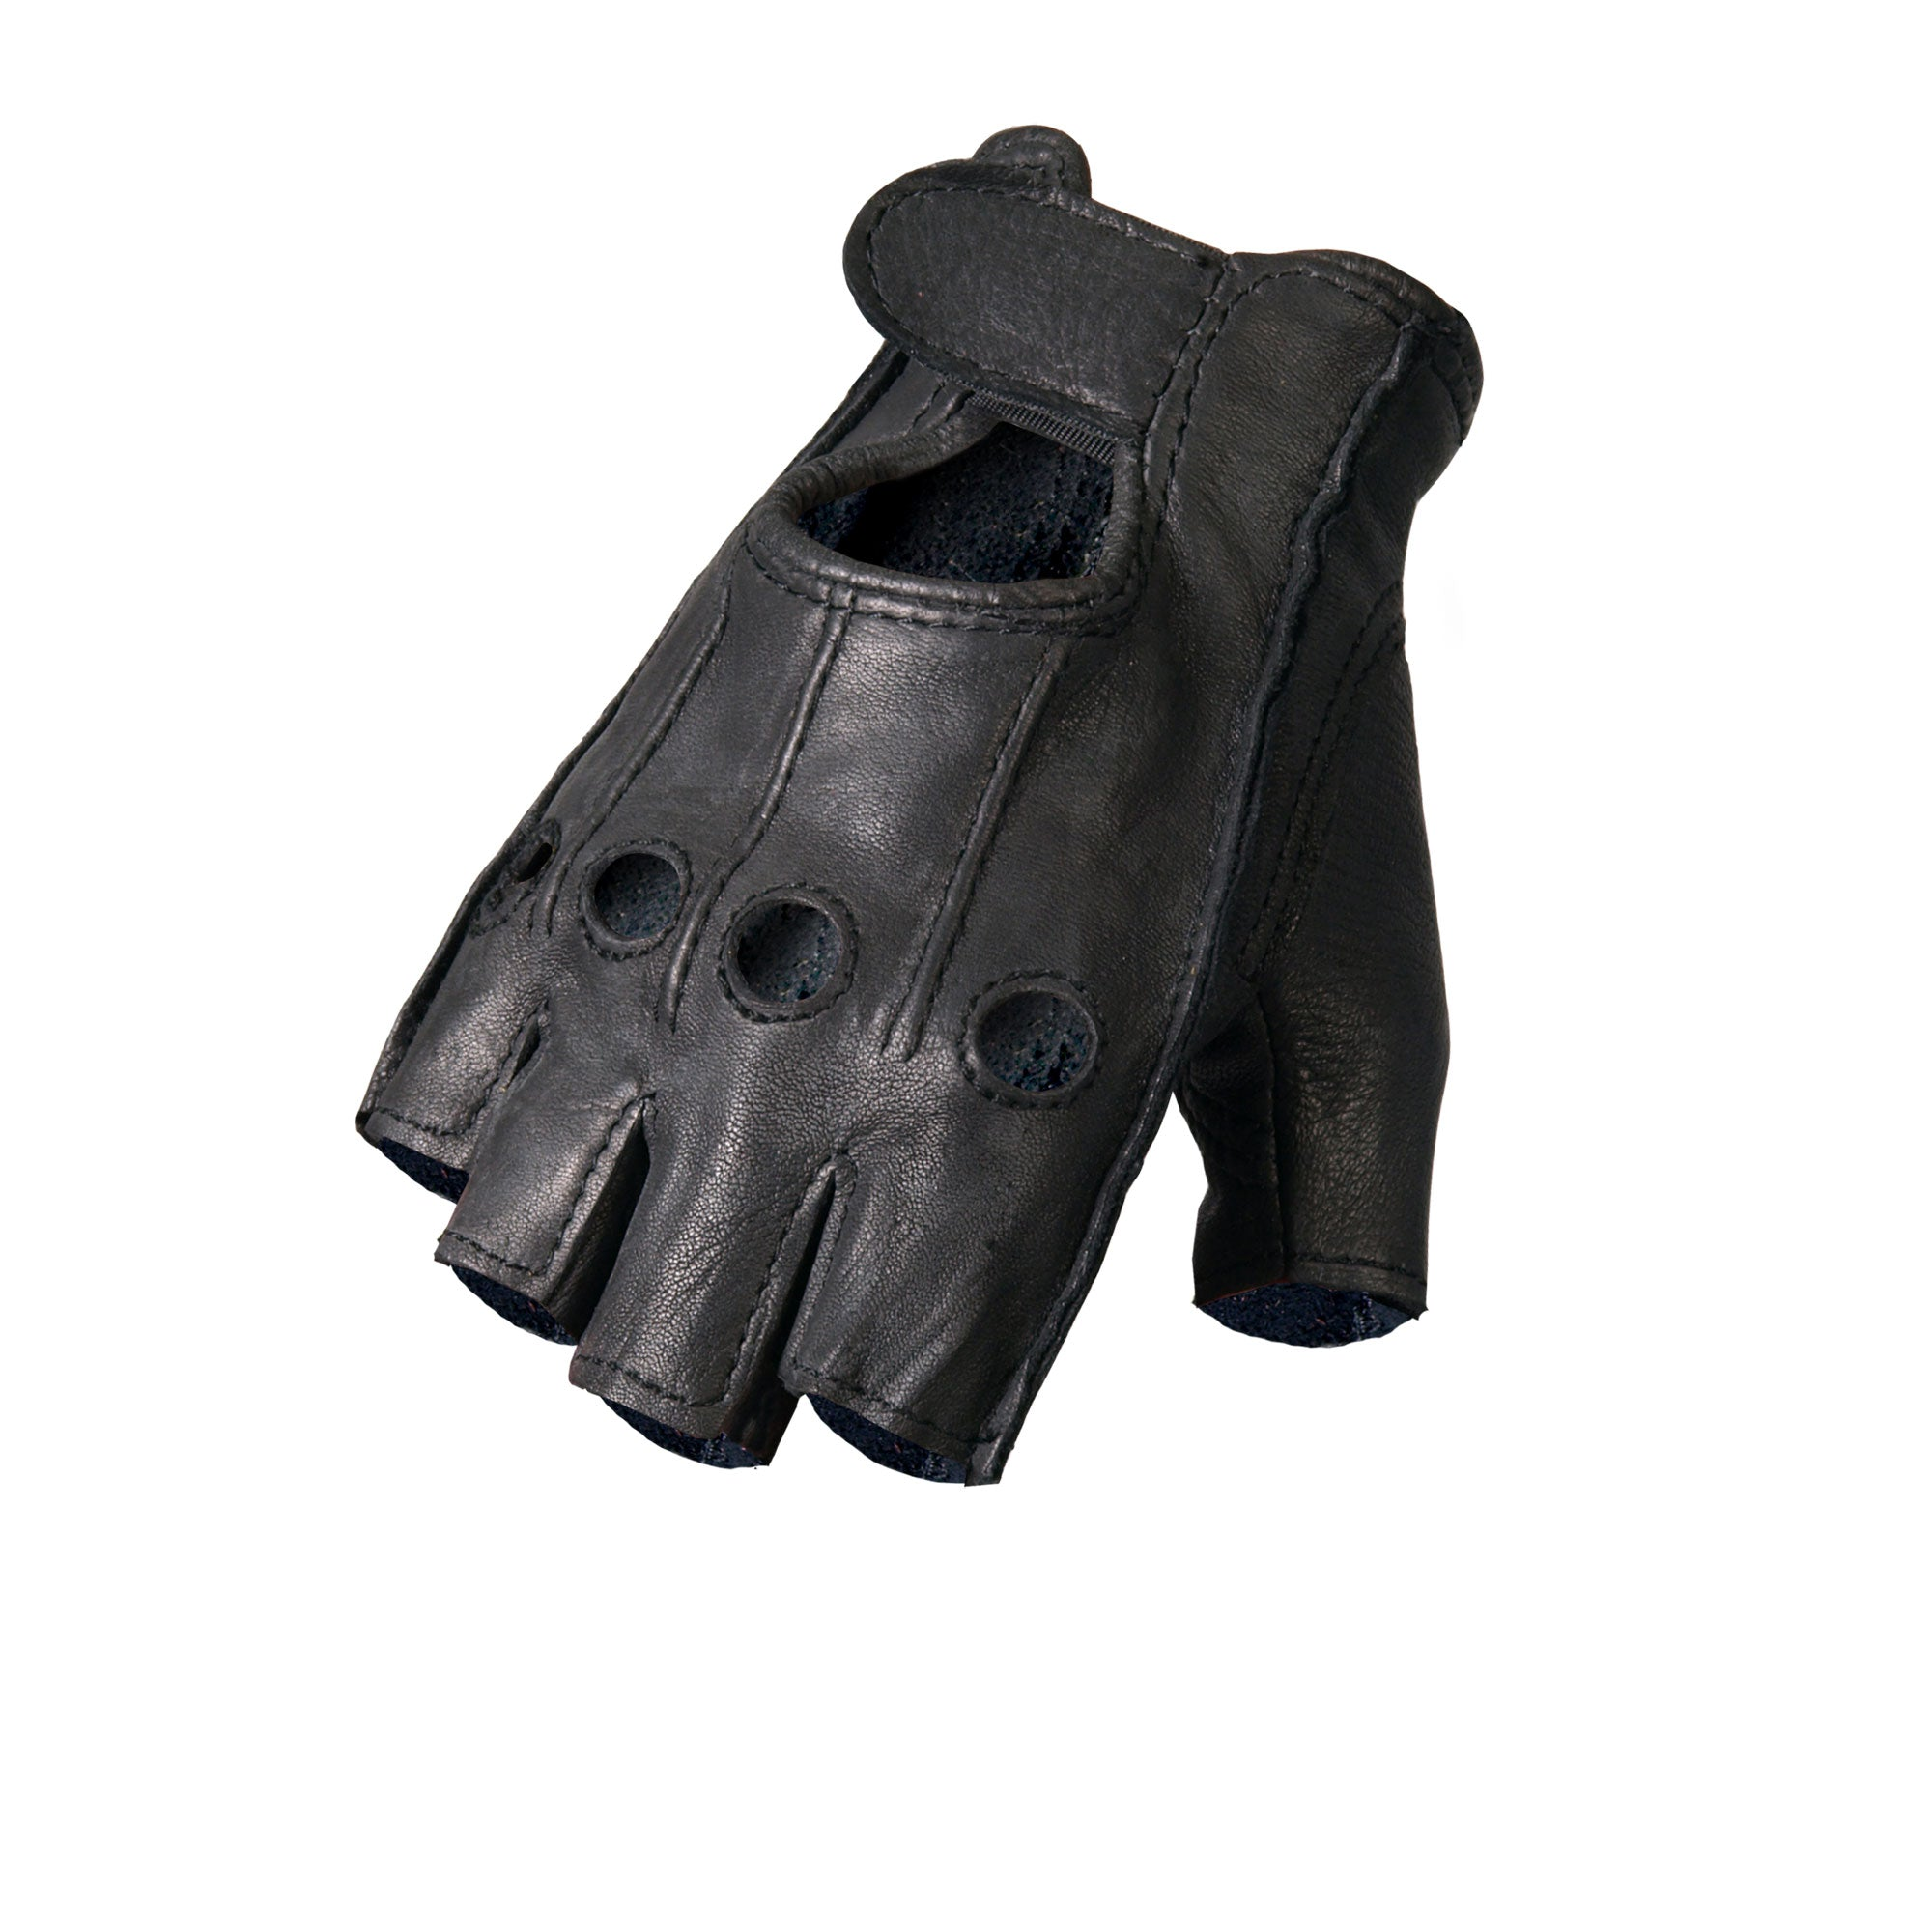 Hot Leathers GVD1005 Deerskin Fingerless Gloves